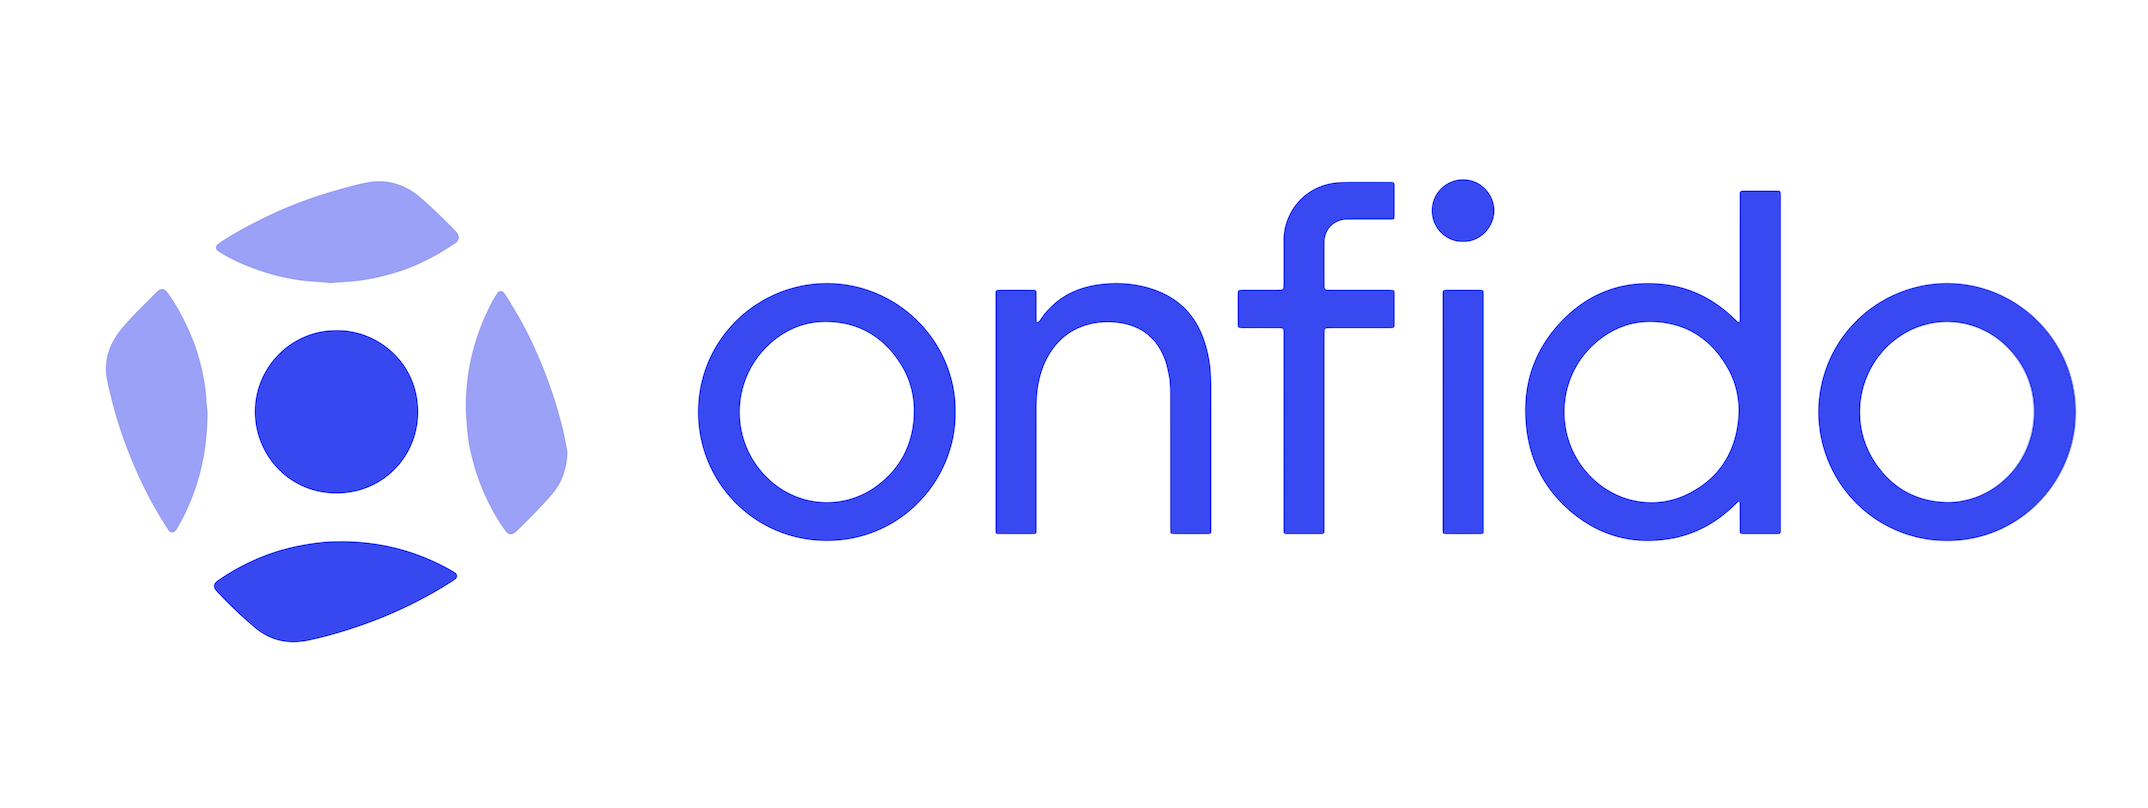 LocalBitcoins Partners with Onfido for Facial Biometric Verification of Bitcoin Users